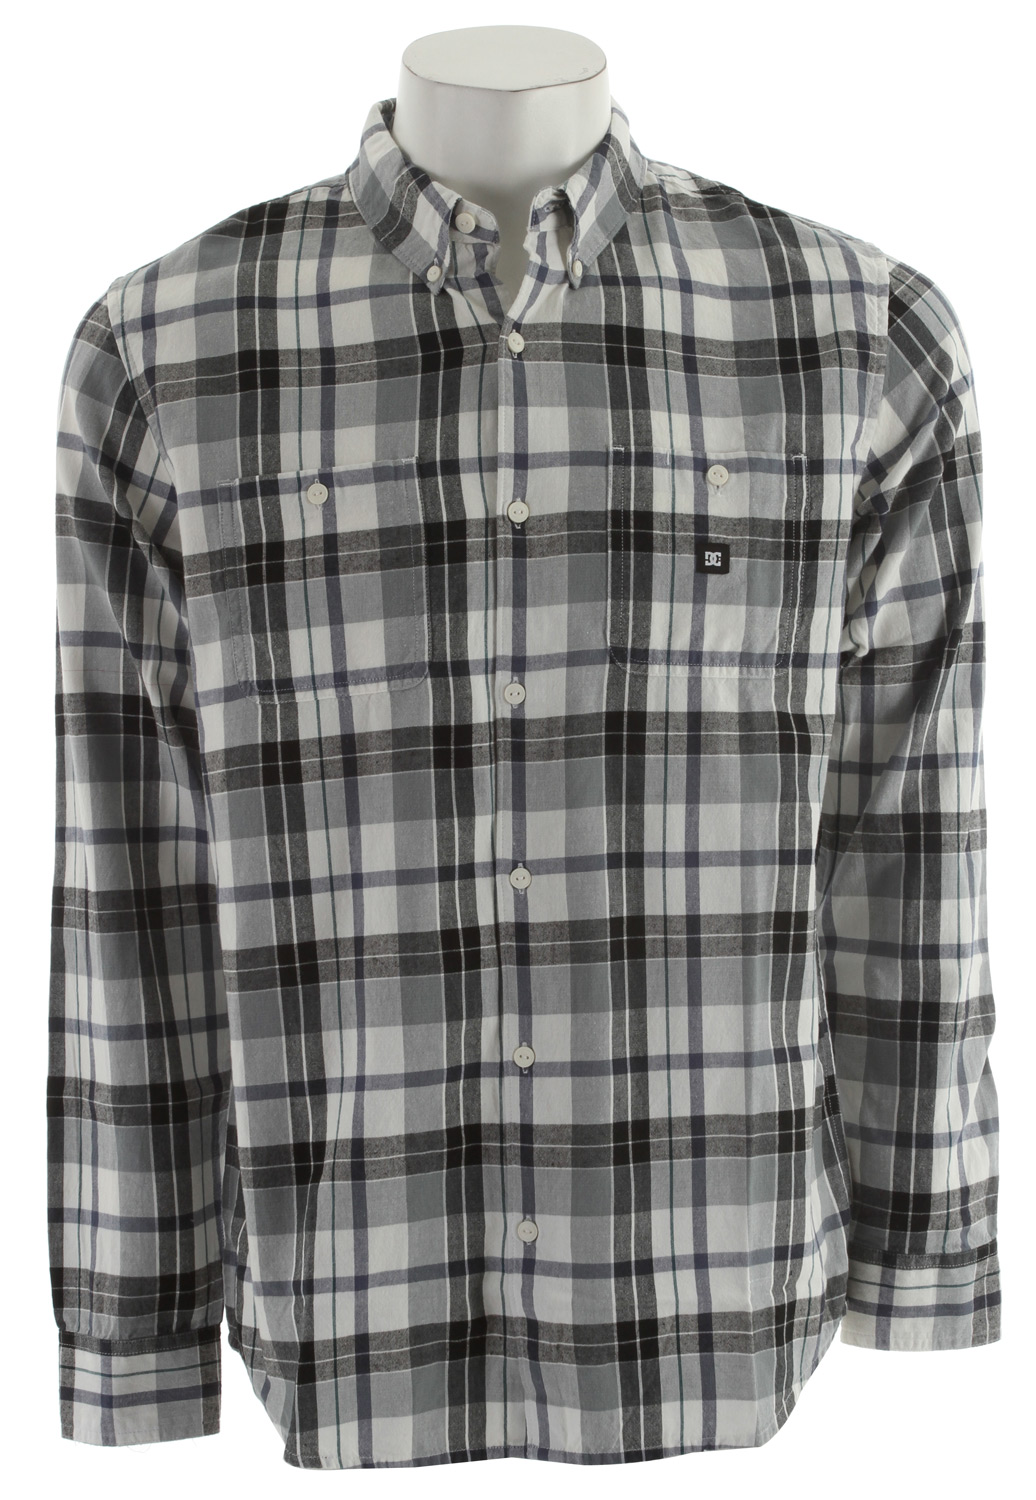 Skateboard The Wedge is 100% cotton, 100% awesome, and 100% plaid.That's 300%. Add 100% comfort, and 100% style, and you've got 600%. Enough said. - $30.36